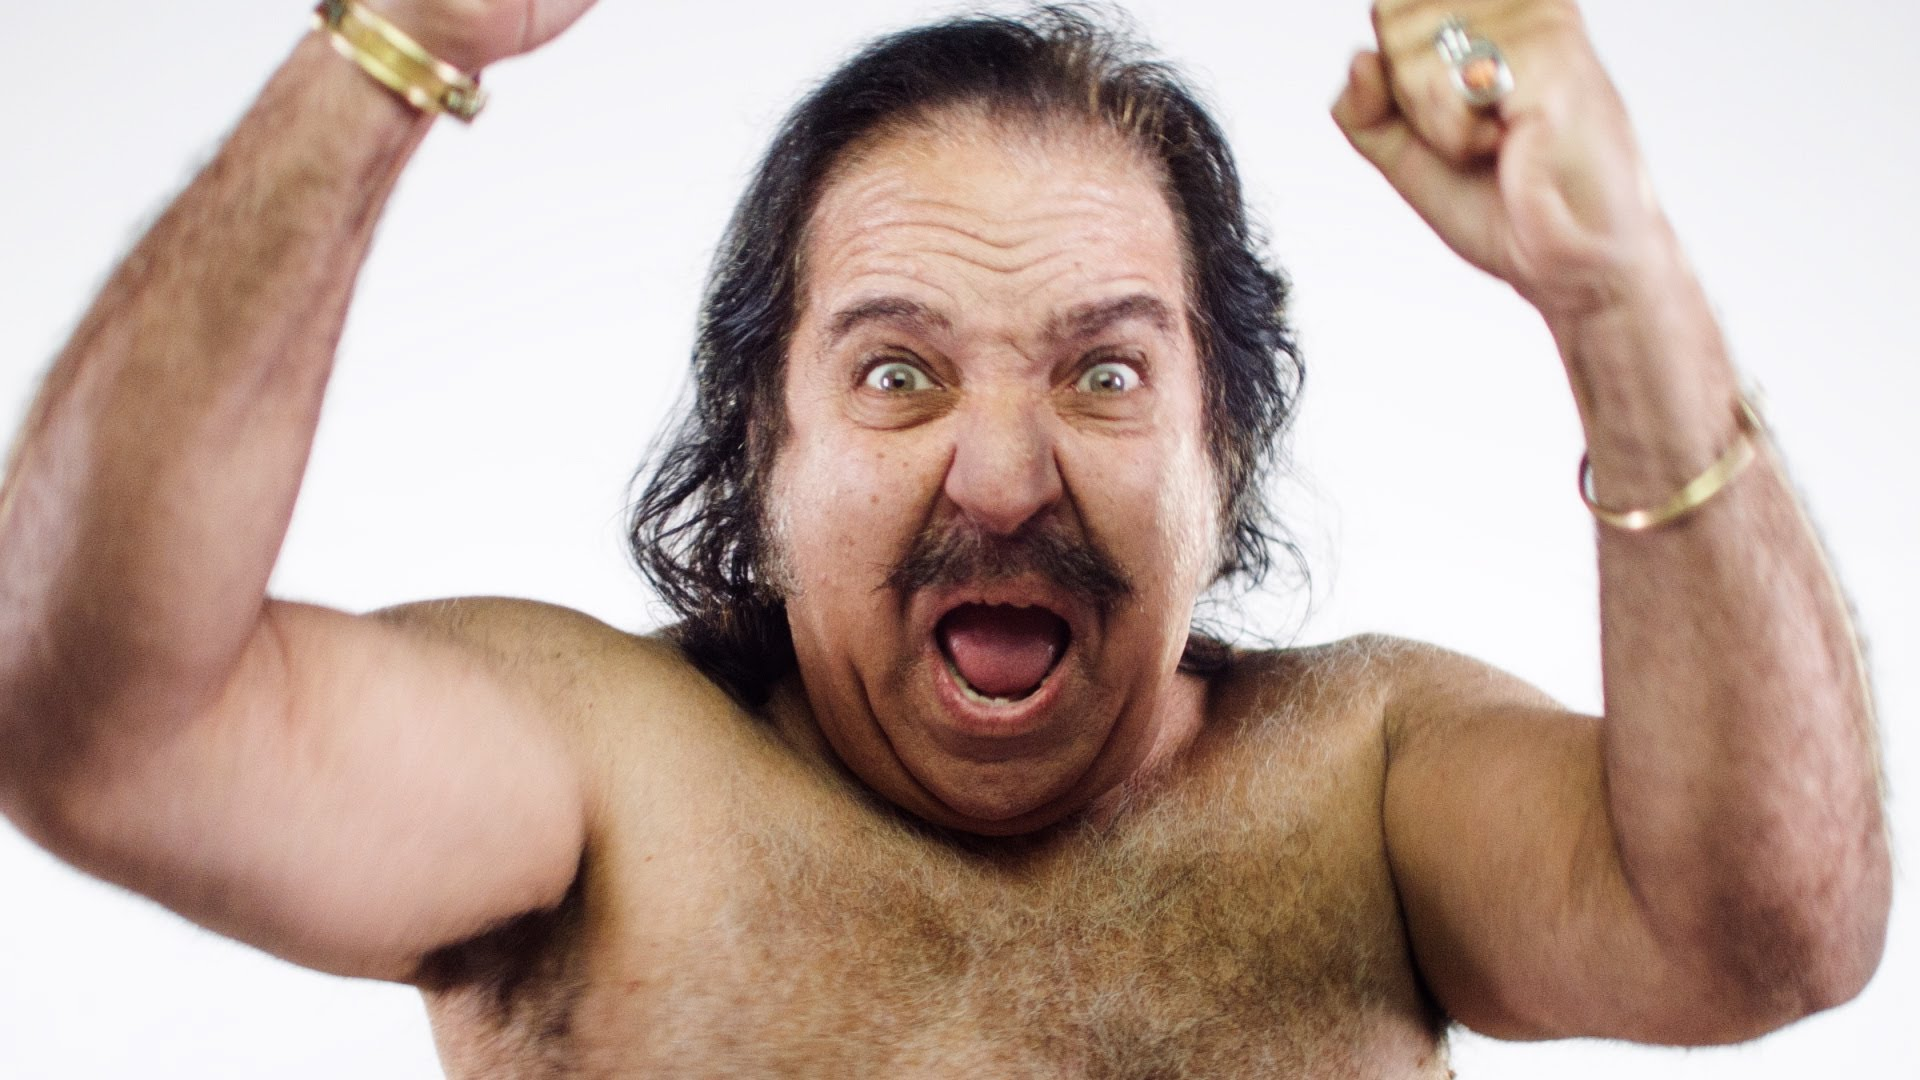 https://i0.wp.com/richestcelebrities.org/wp-content/uploads/2014/08/Ron-Jeremy-Net-Worth.jpg